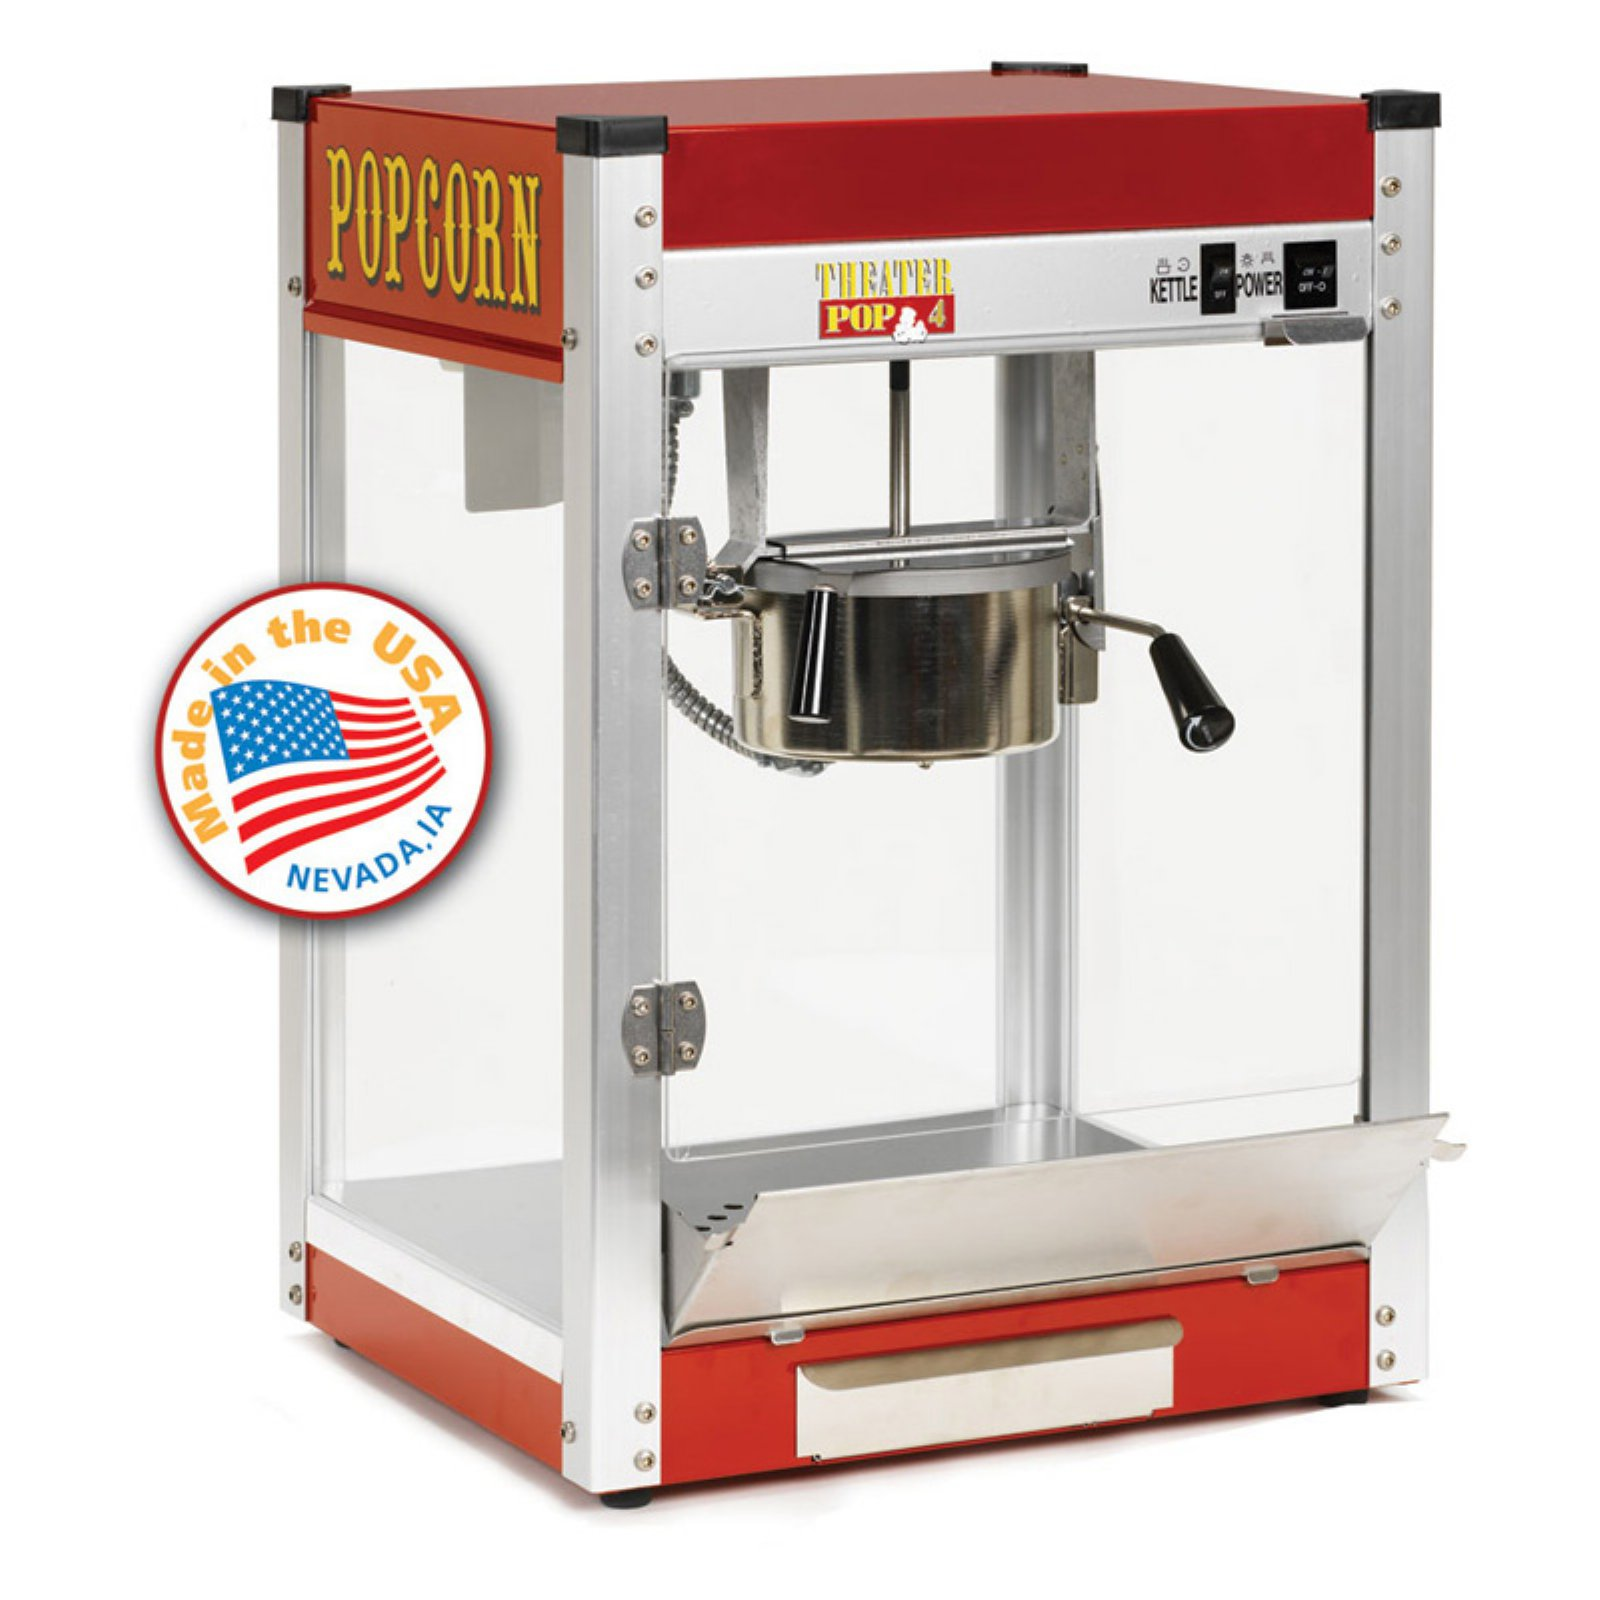 Paragon Theater Pop 4 oz. Popcorn Machine